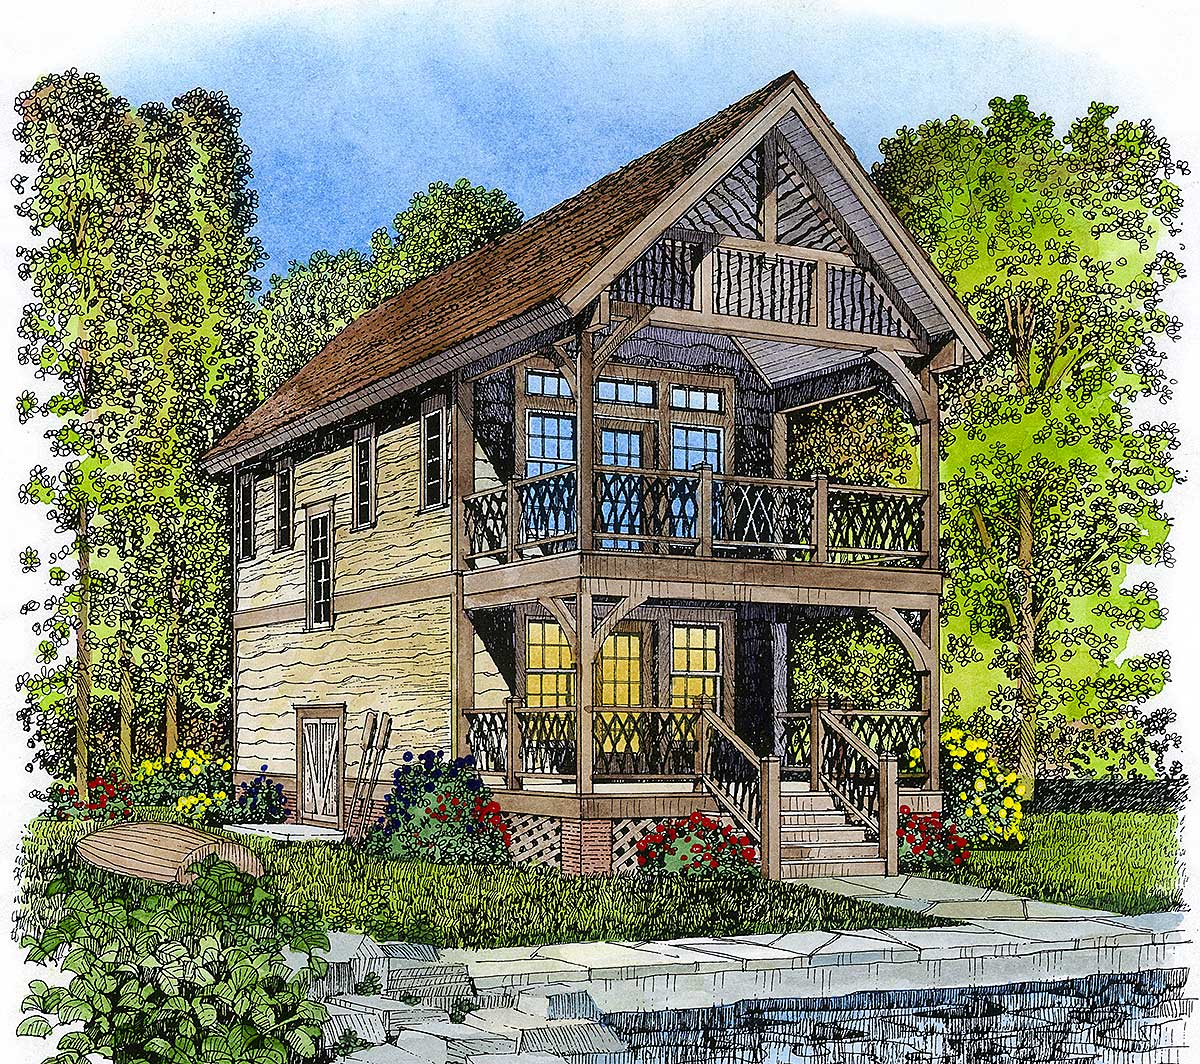 Petite adirondack style retreat 43041pf architectural for Adirondack house plans